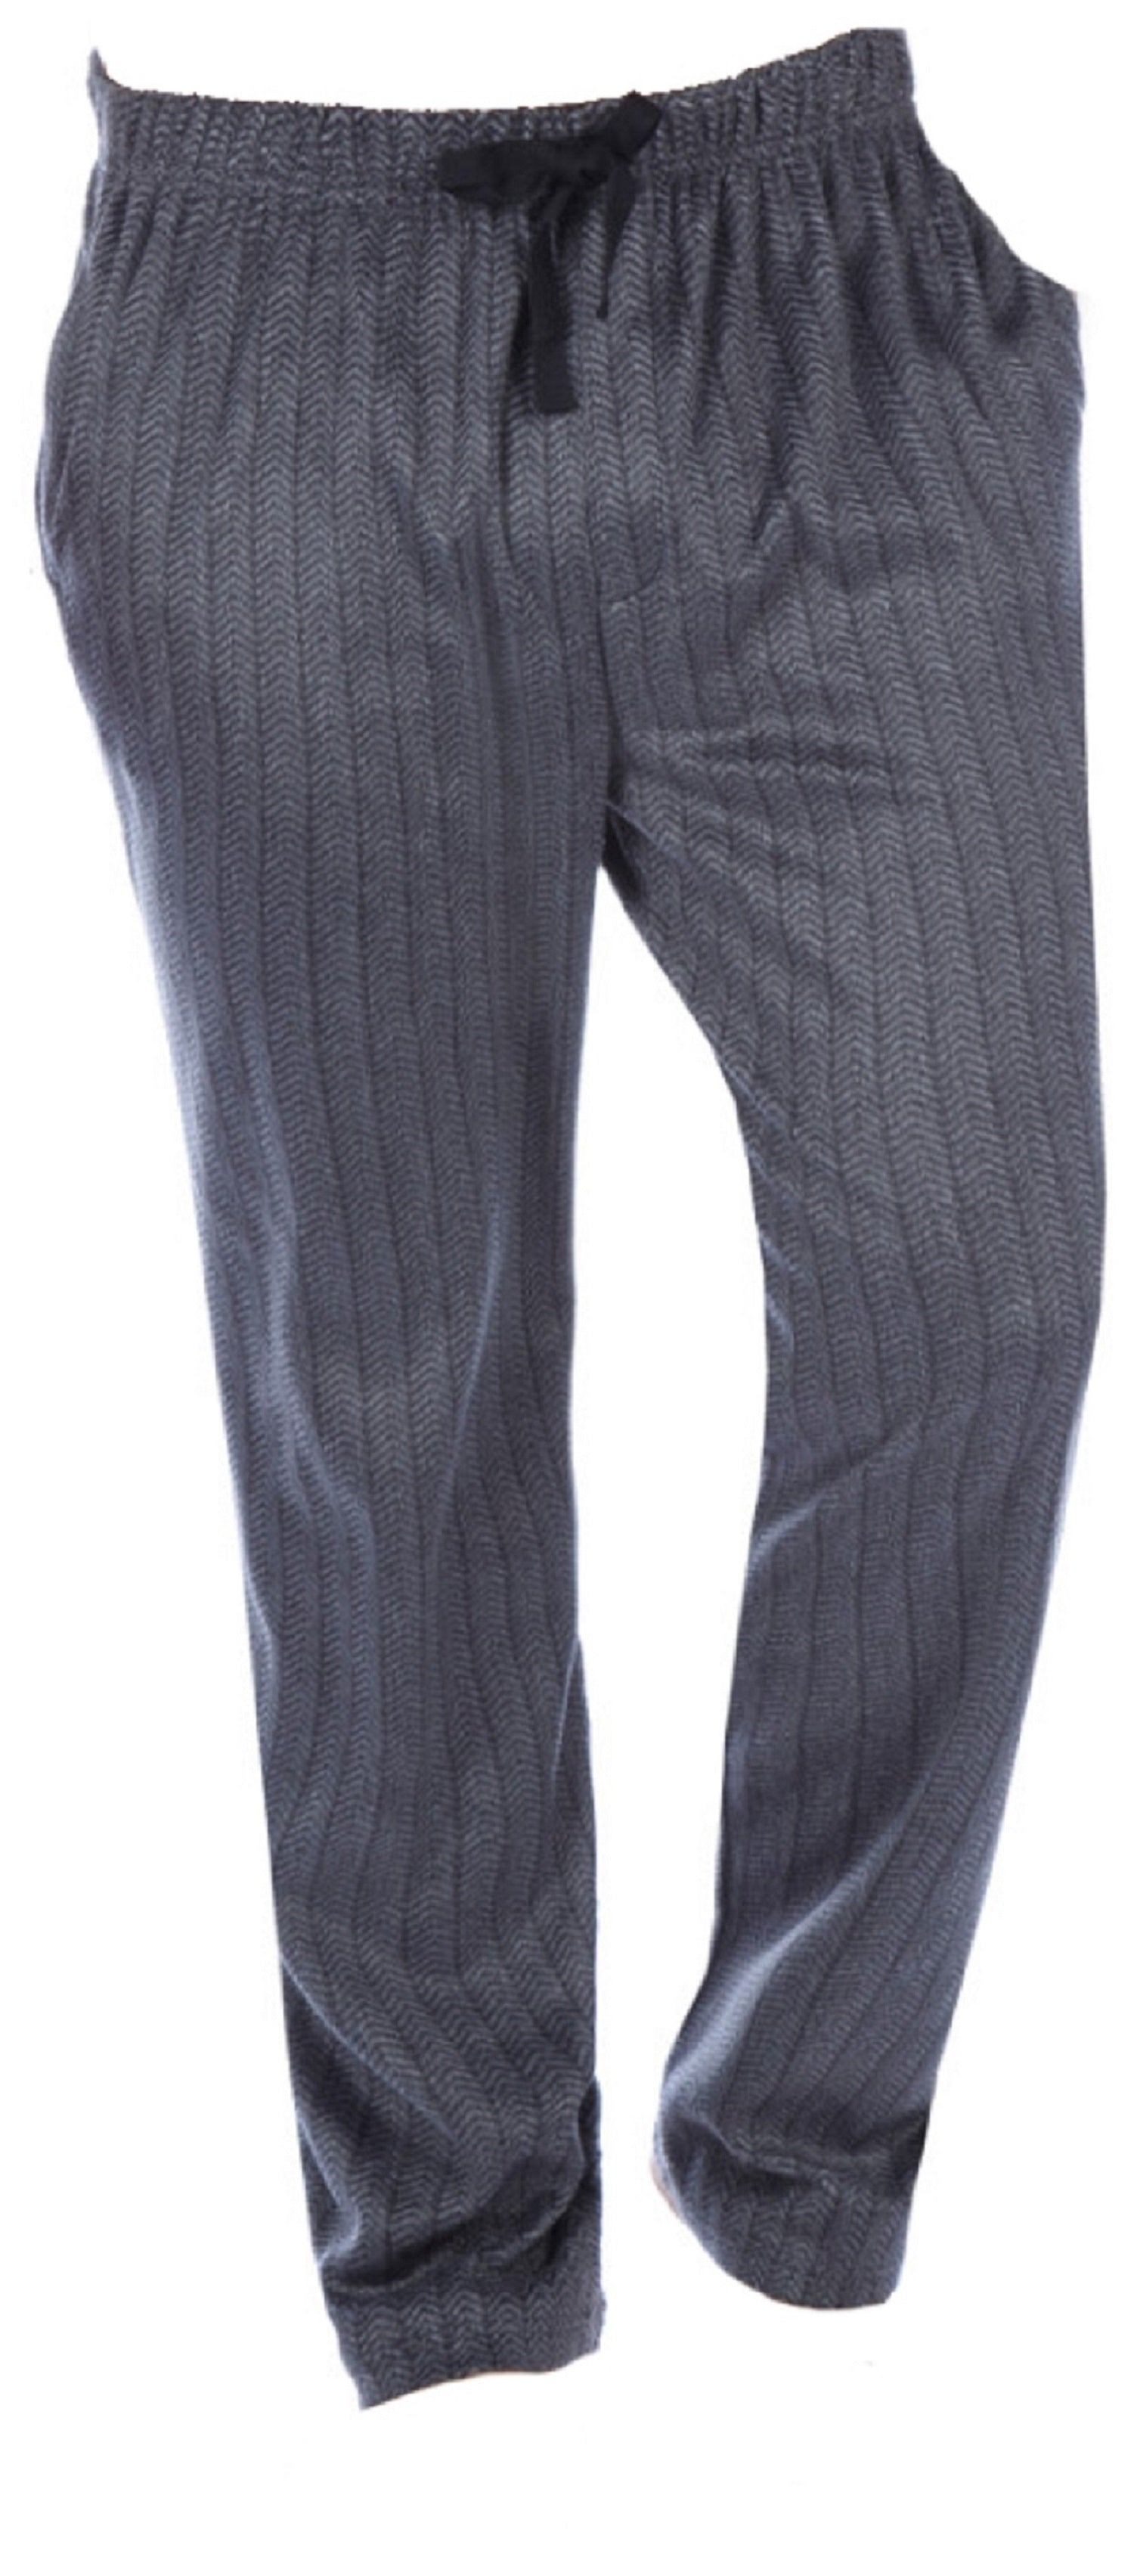 OCTAVE Mens Herringbone Soft Minky Fleece Warm Winter Loungewear Pyjama Bottoms